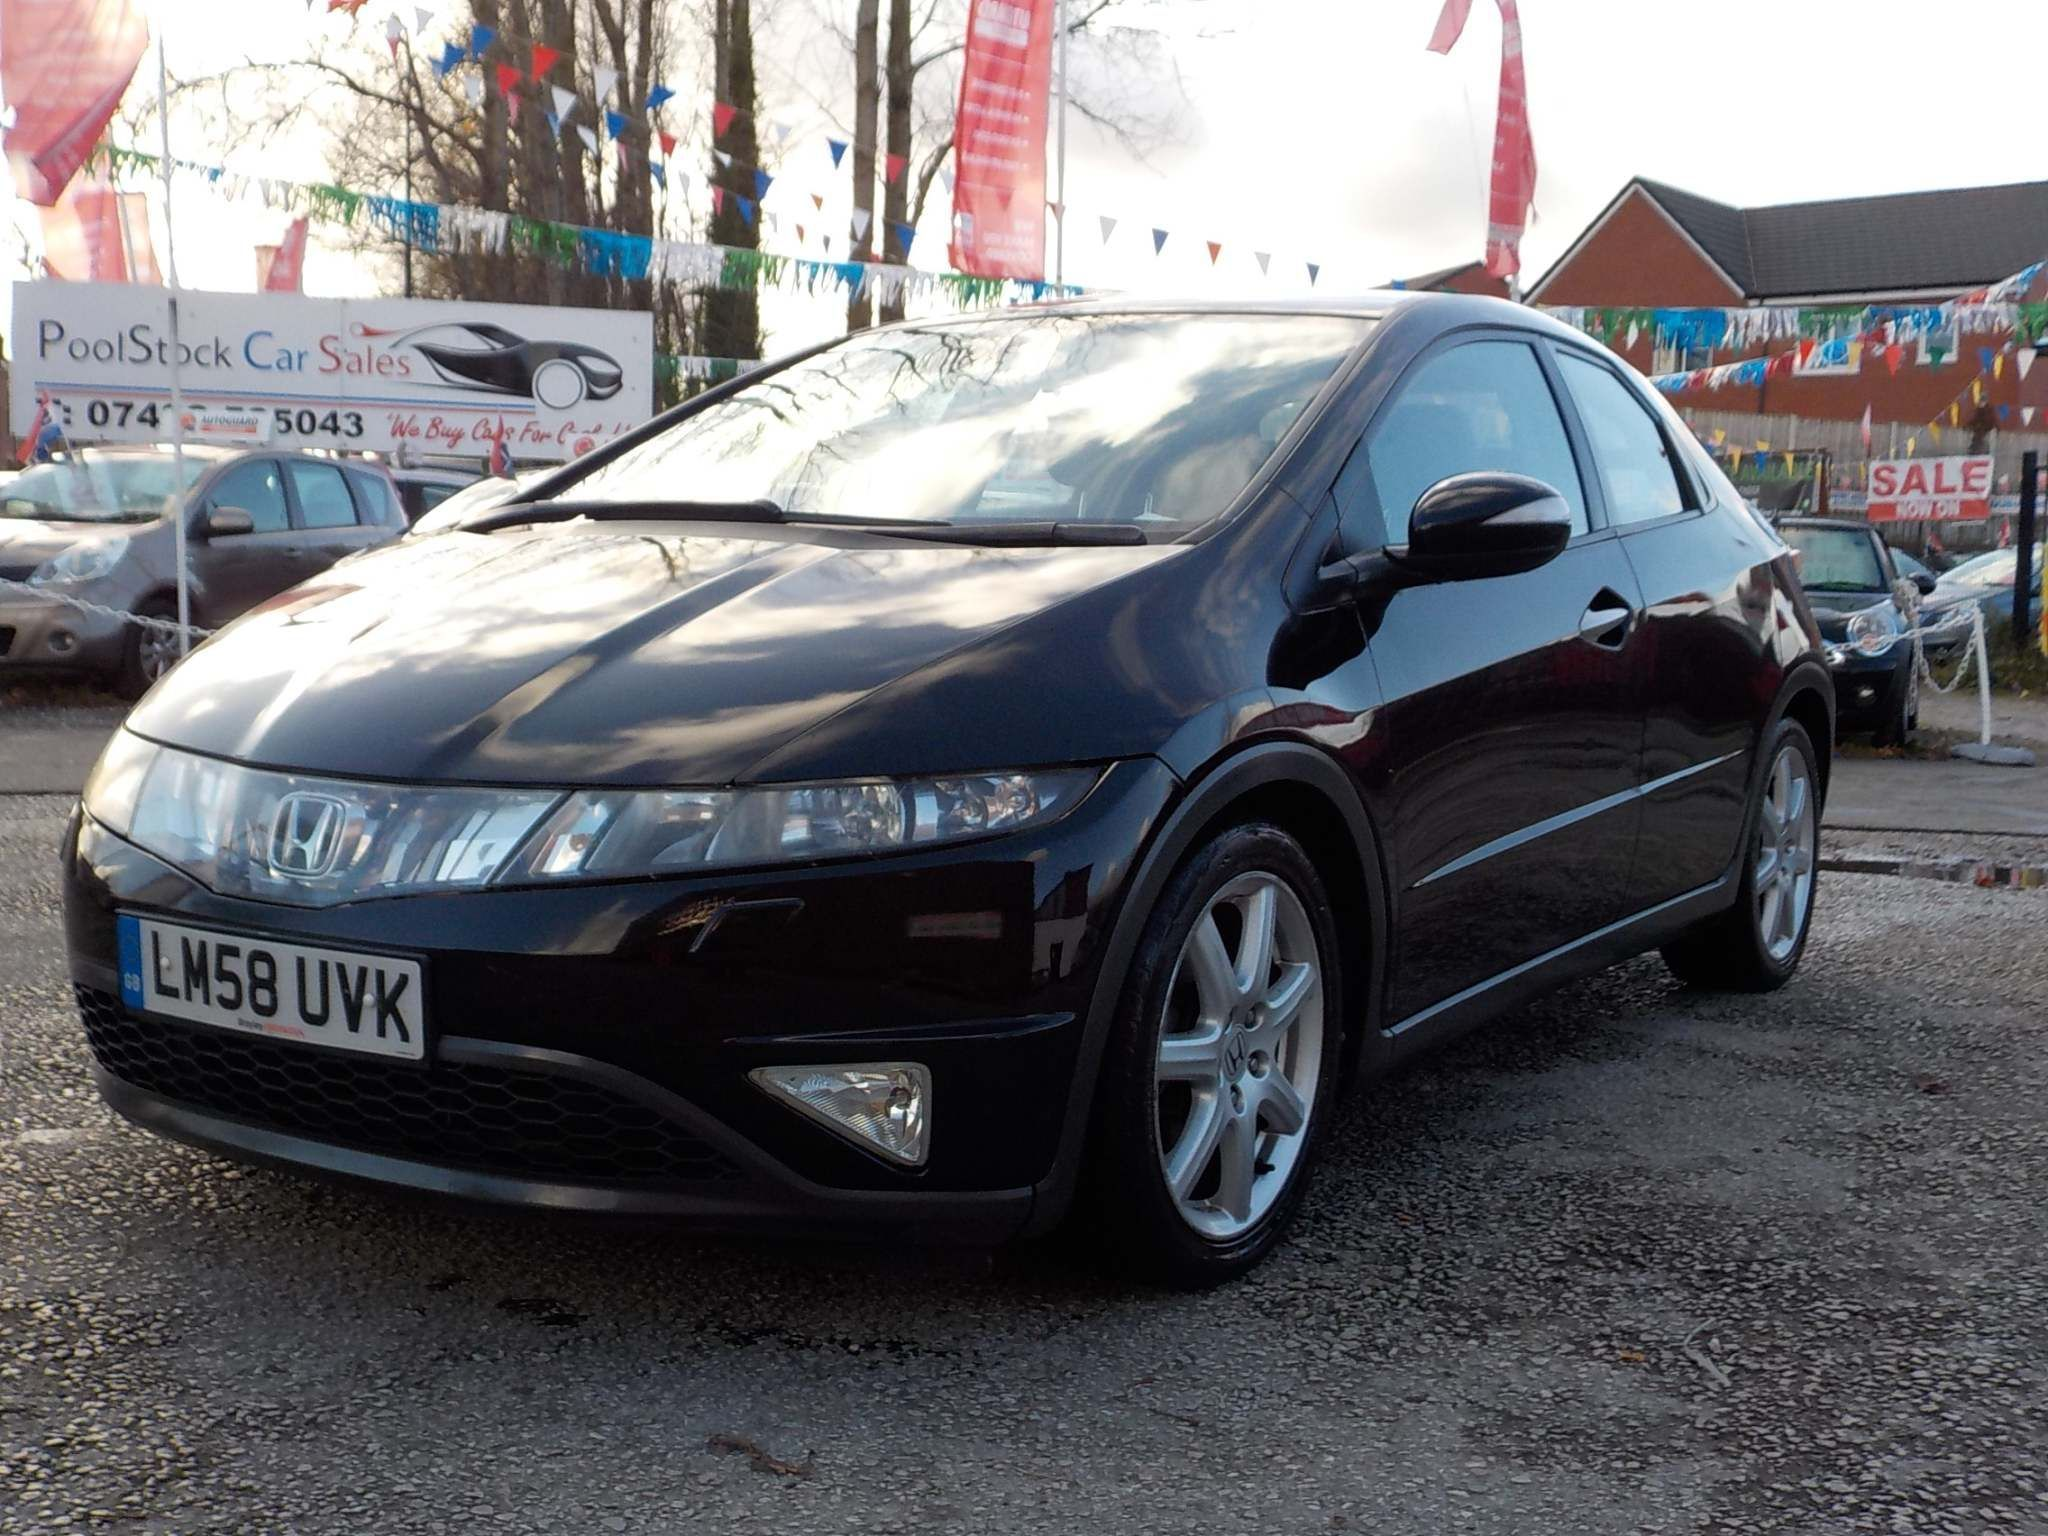 Honda Civic 1.8 i-VTEC EX i-Shift 5dr